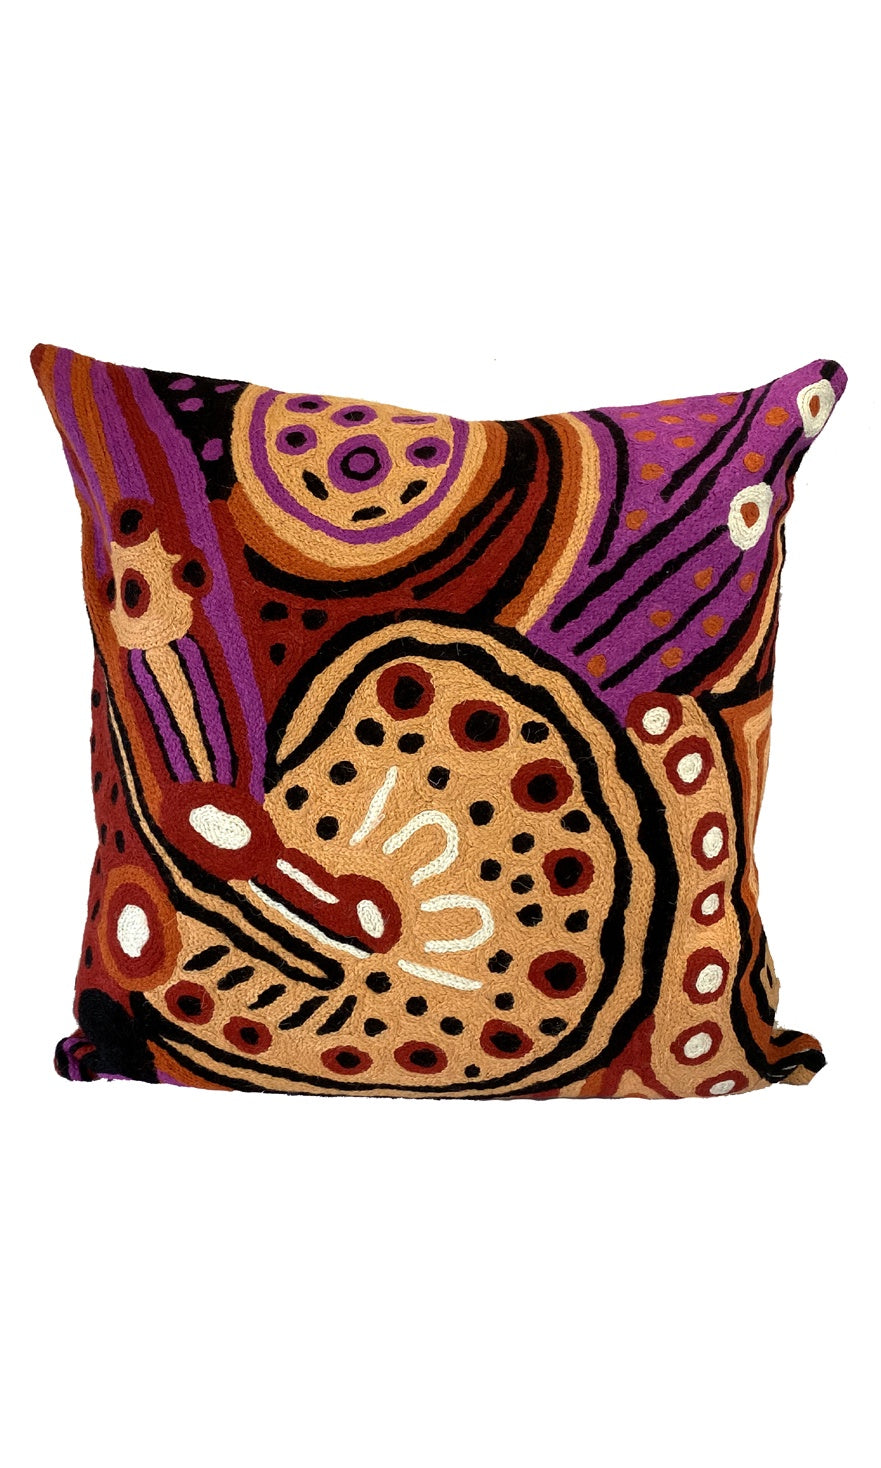 Aboriginal Art Cushion Cover by Julie Woods (5)